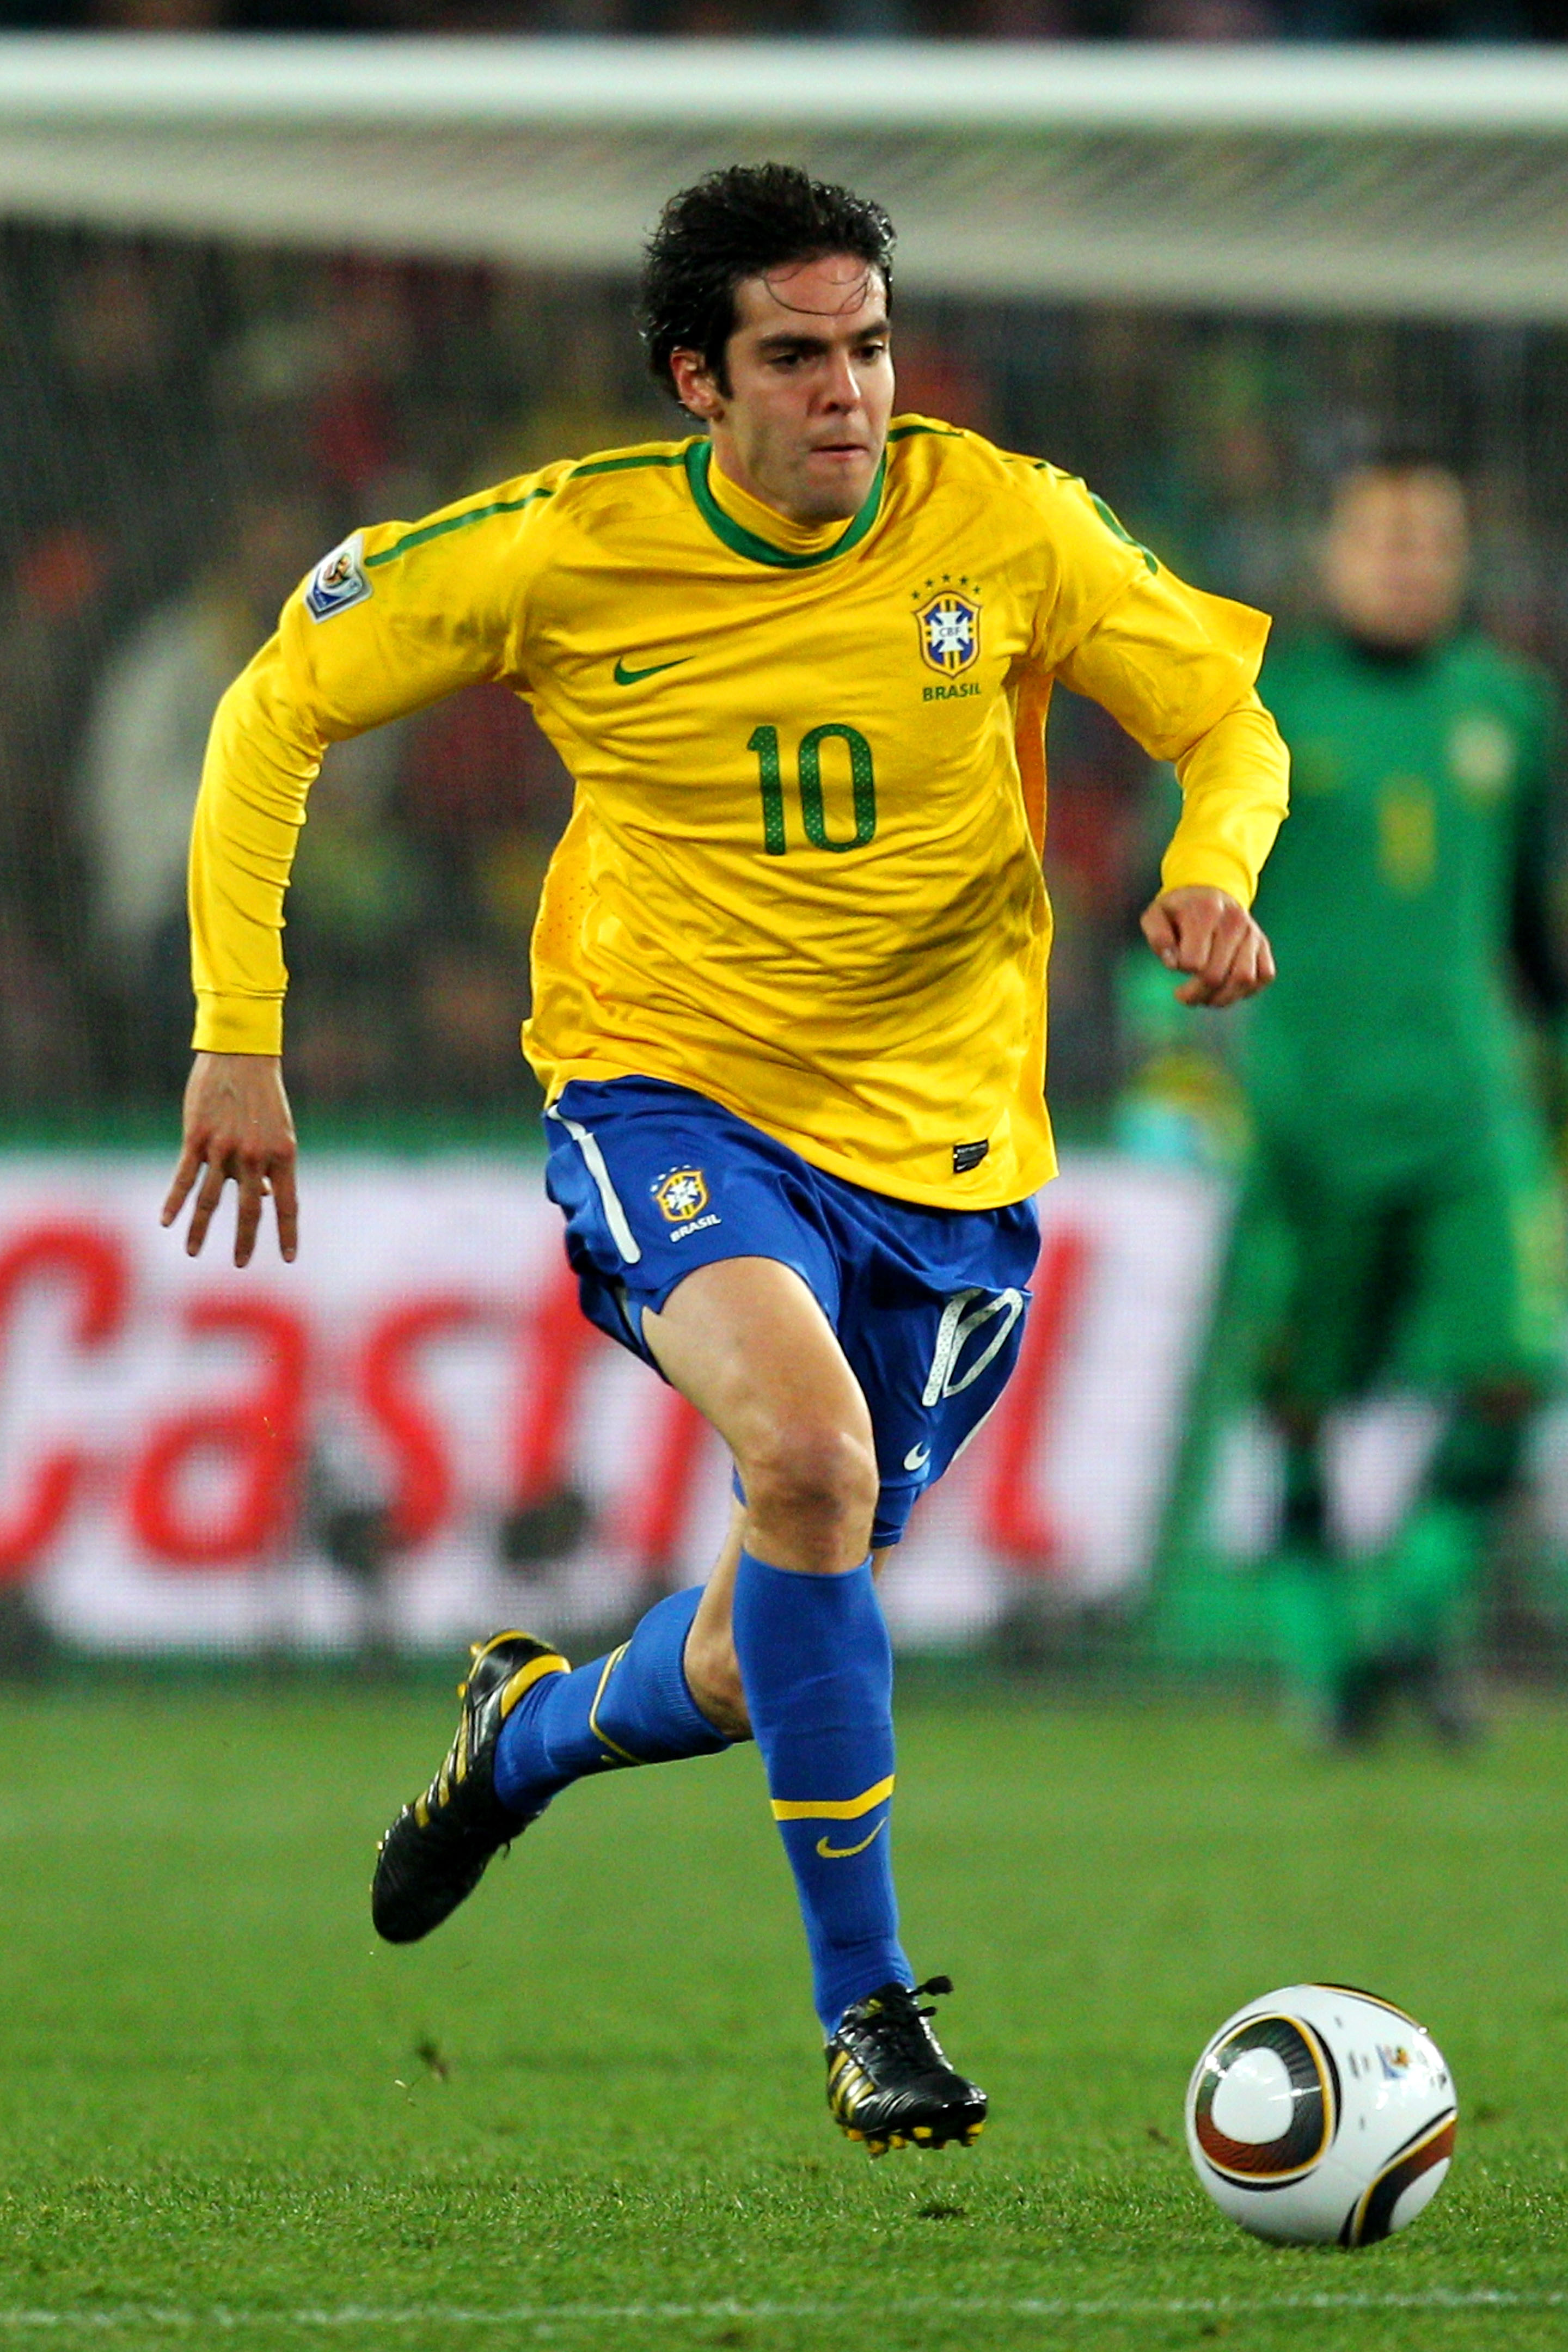 JOHANNESBURG, SOUTH AFRICA - JUNE 28:  Kaka of Brazil runs with the ball during the 2010 FIFA World Cup South Africa Round of Sixteen match between Brazil and Chile at Ellis Park Stadium on June 28, 2010 in Johannesburg, South Africa.  (Photo by Cameron S